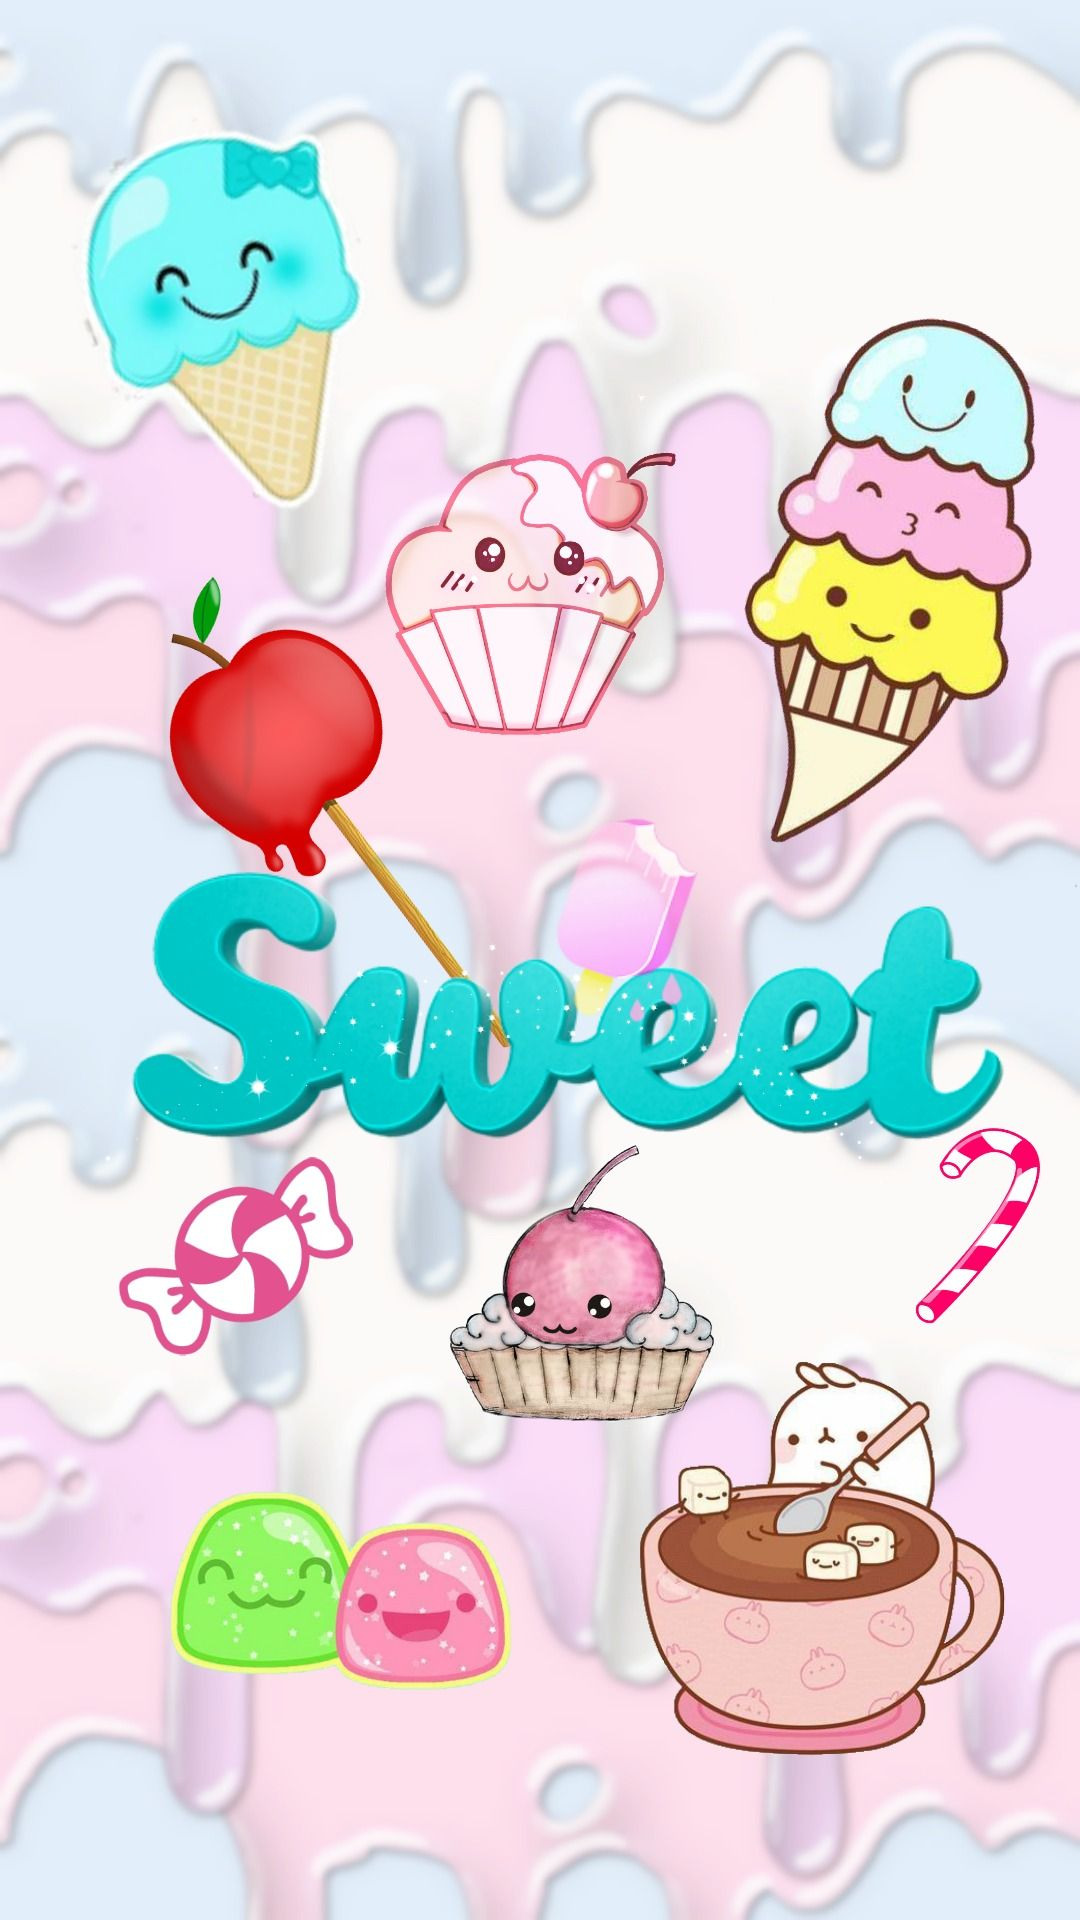 1080x1920 Cute Kawaii Wallpapers (58+), Encuentra fondos de pantalla HD gratis